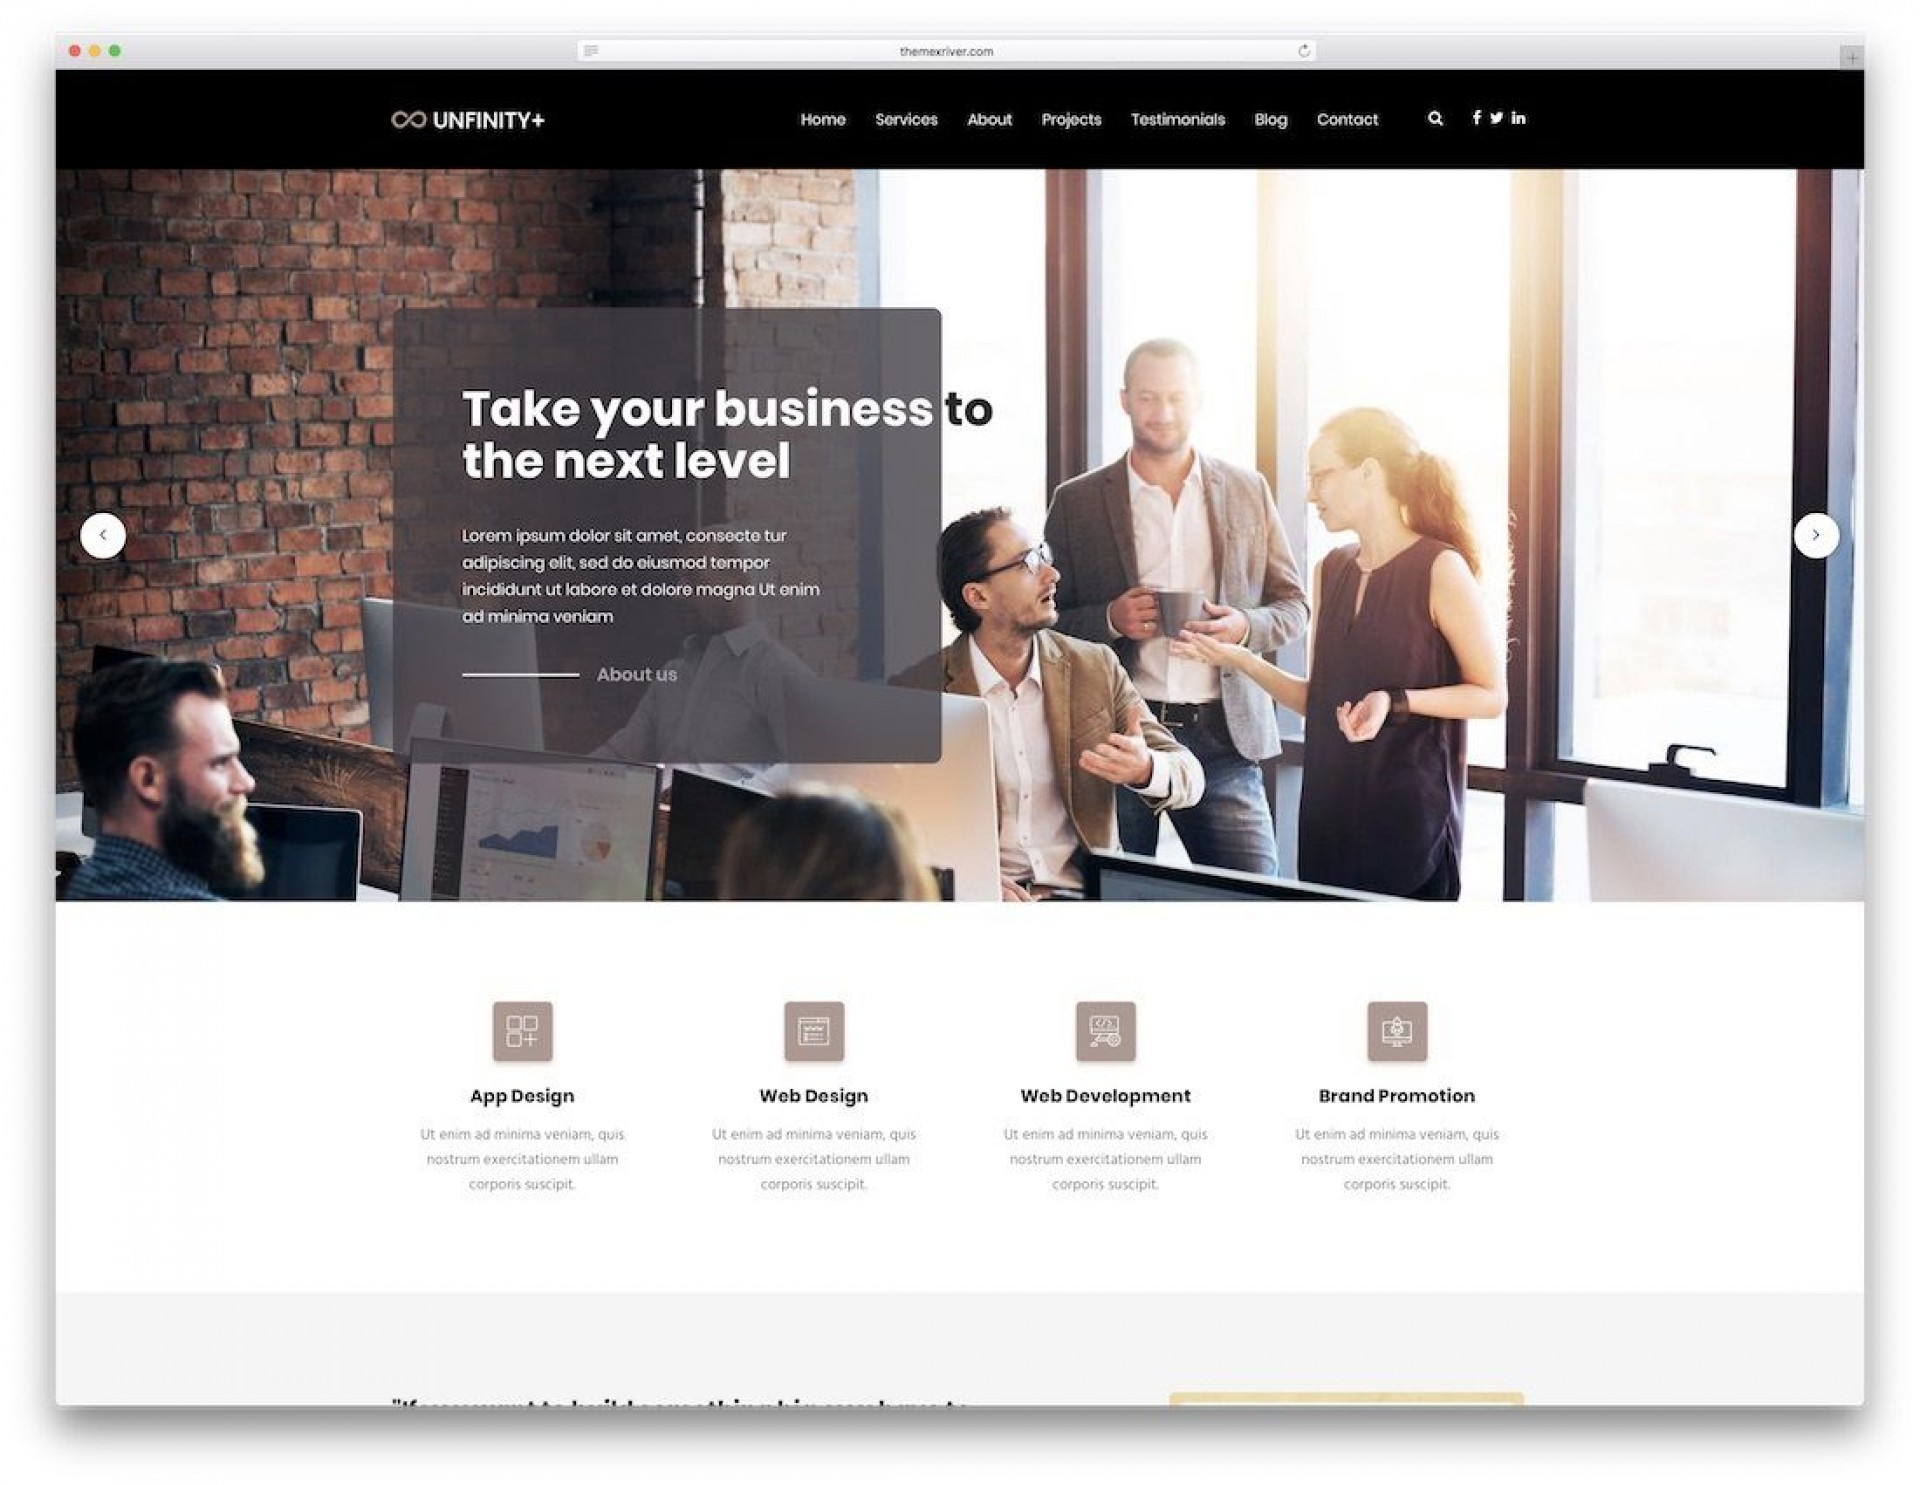 009 Rare One Page Website Template Free Download Html5 Idea  Parallax1920